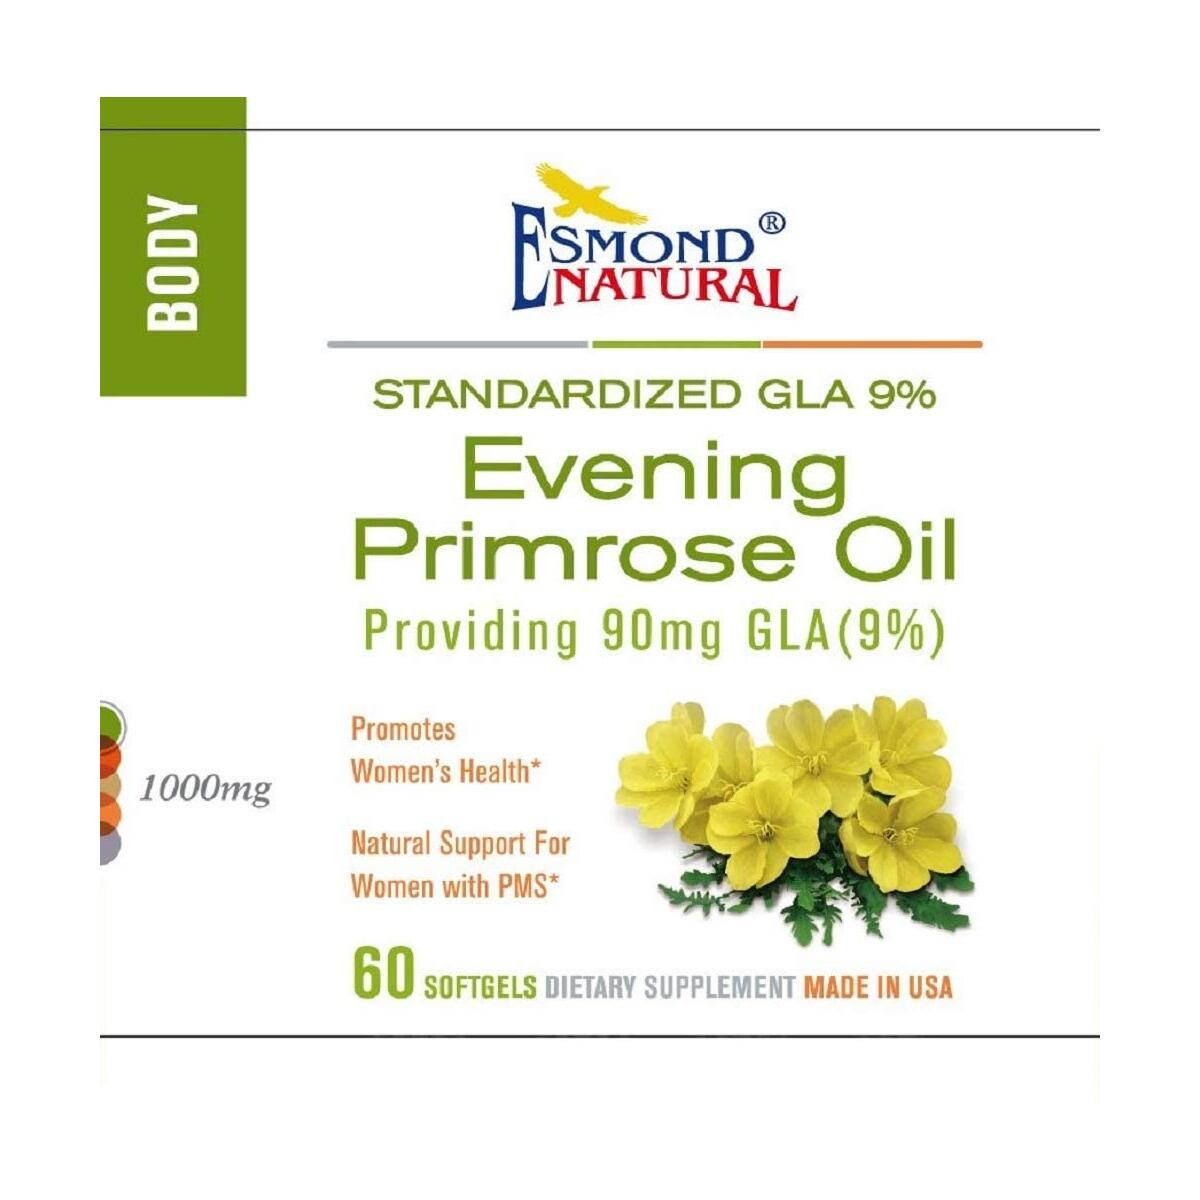 Esmond Natural: Evening Primrose Oil (Promotes Women Health, Natural Support for Women PMS), GMP, Natural Product Assn Certified, Made in USA-1000mg, 60 Softgels